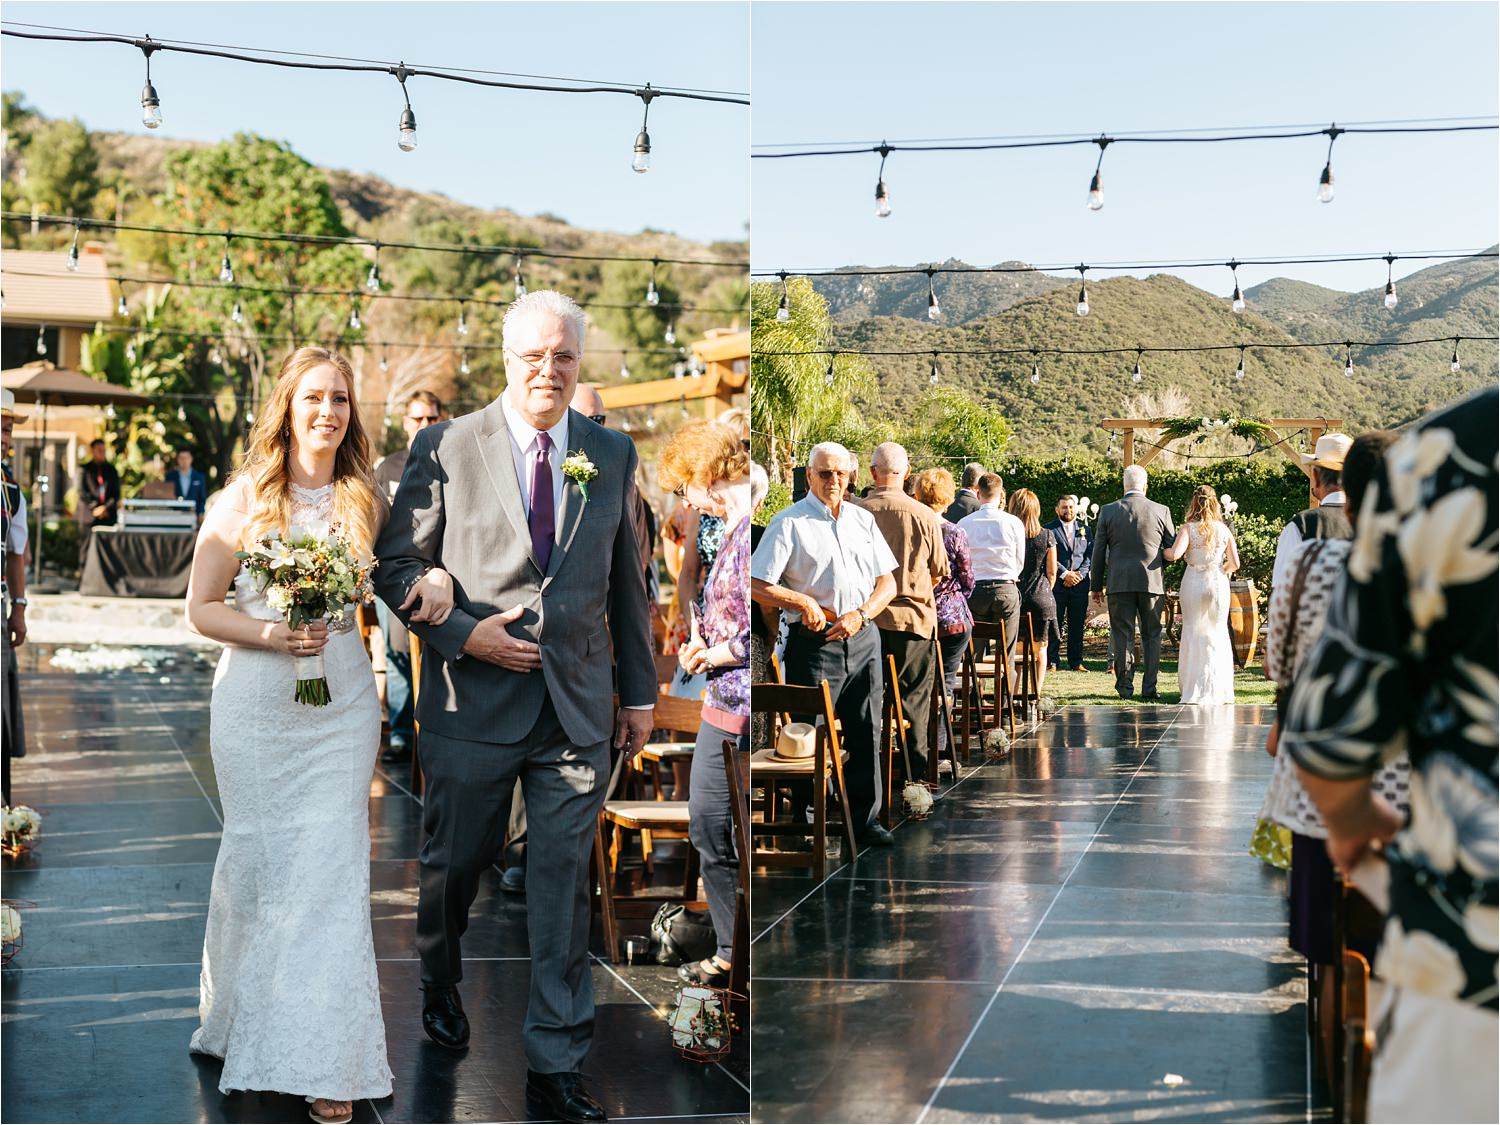 Elegant Backyard Wedding - San Diego Wedding Photographer - https://brittneyhannonphotography.com